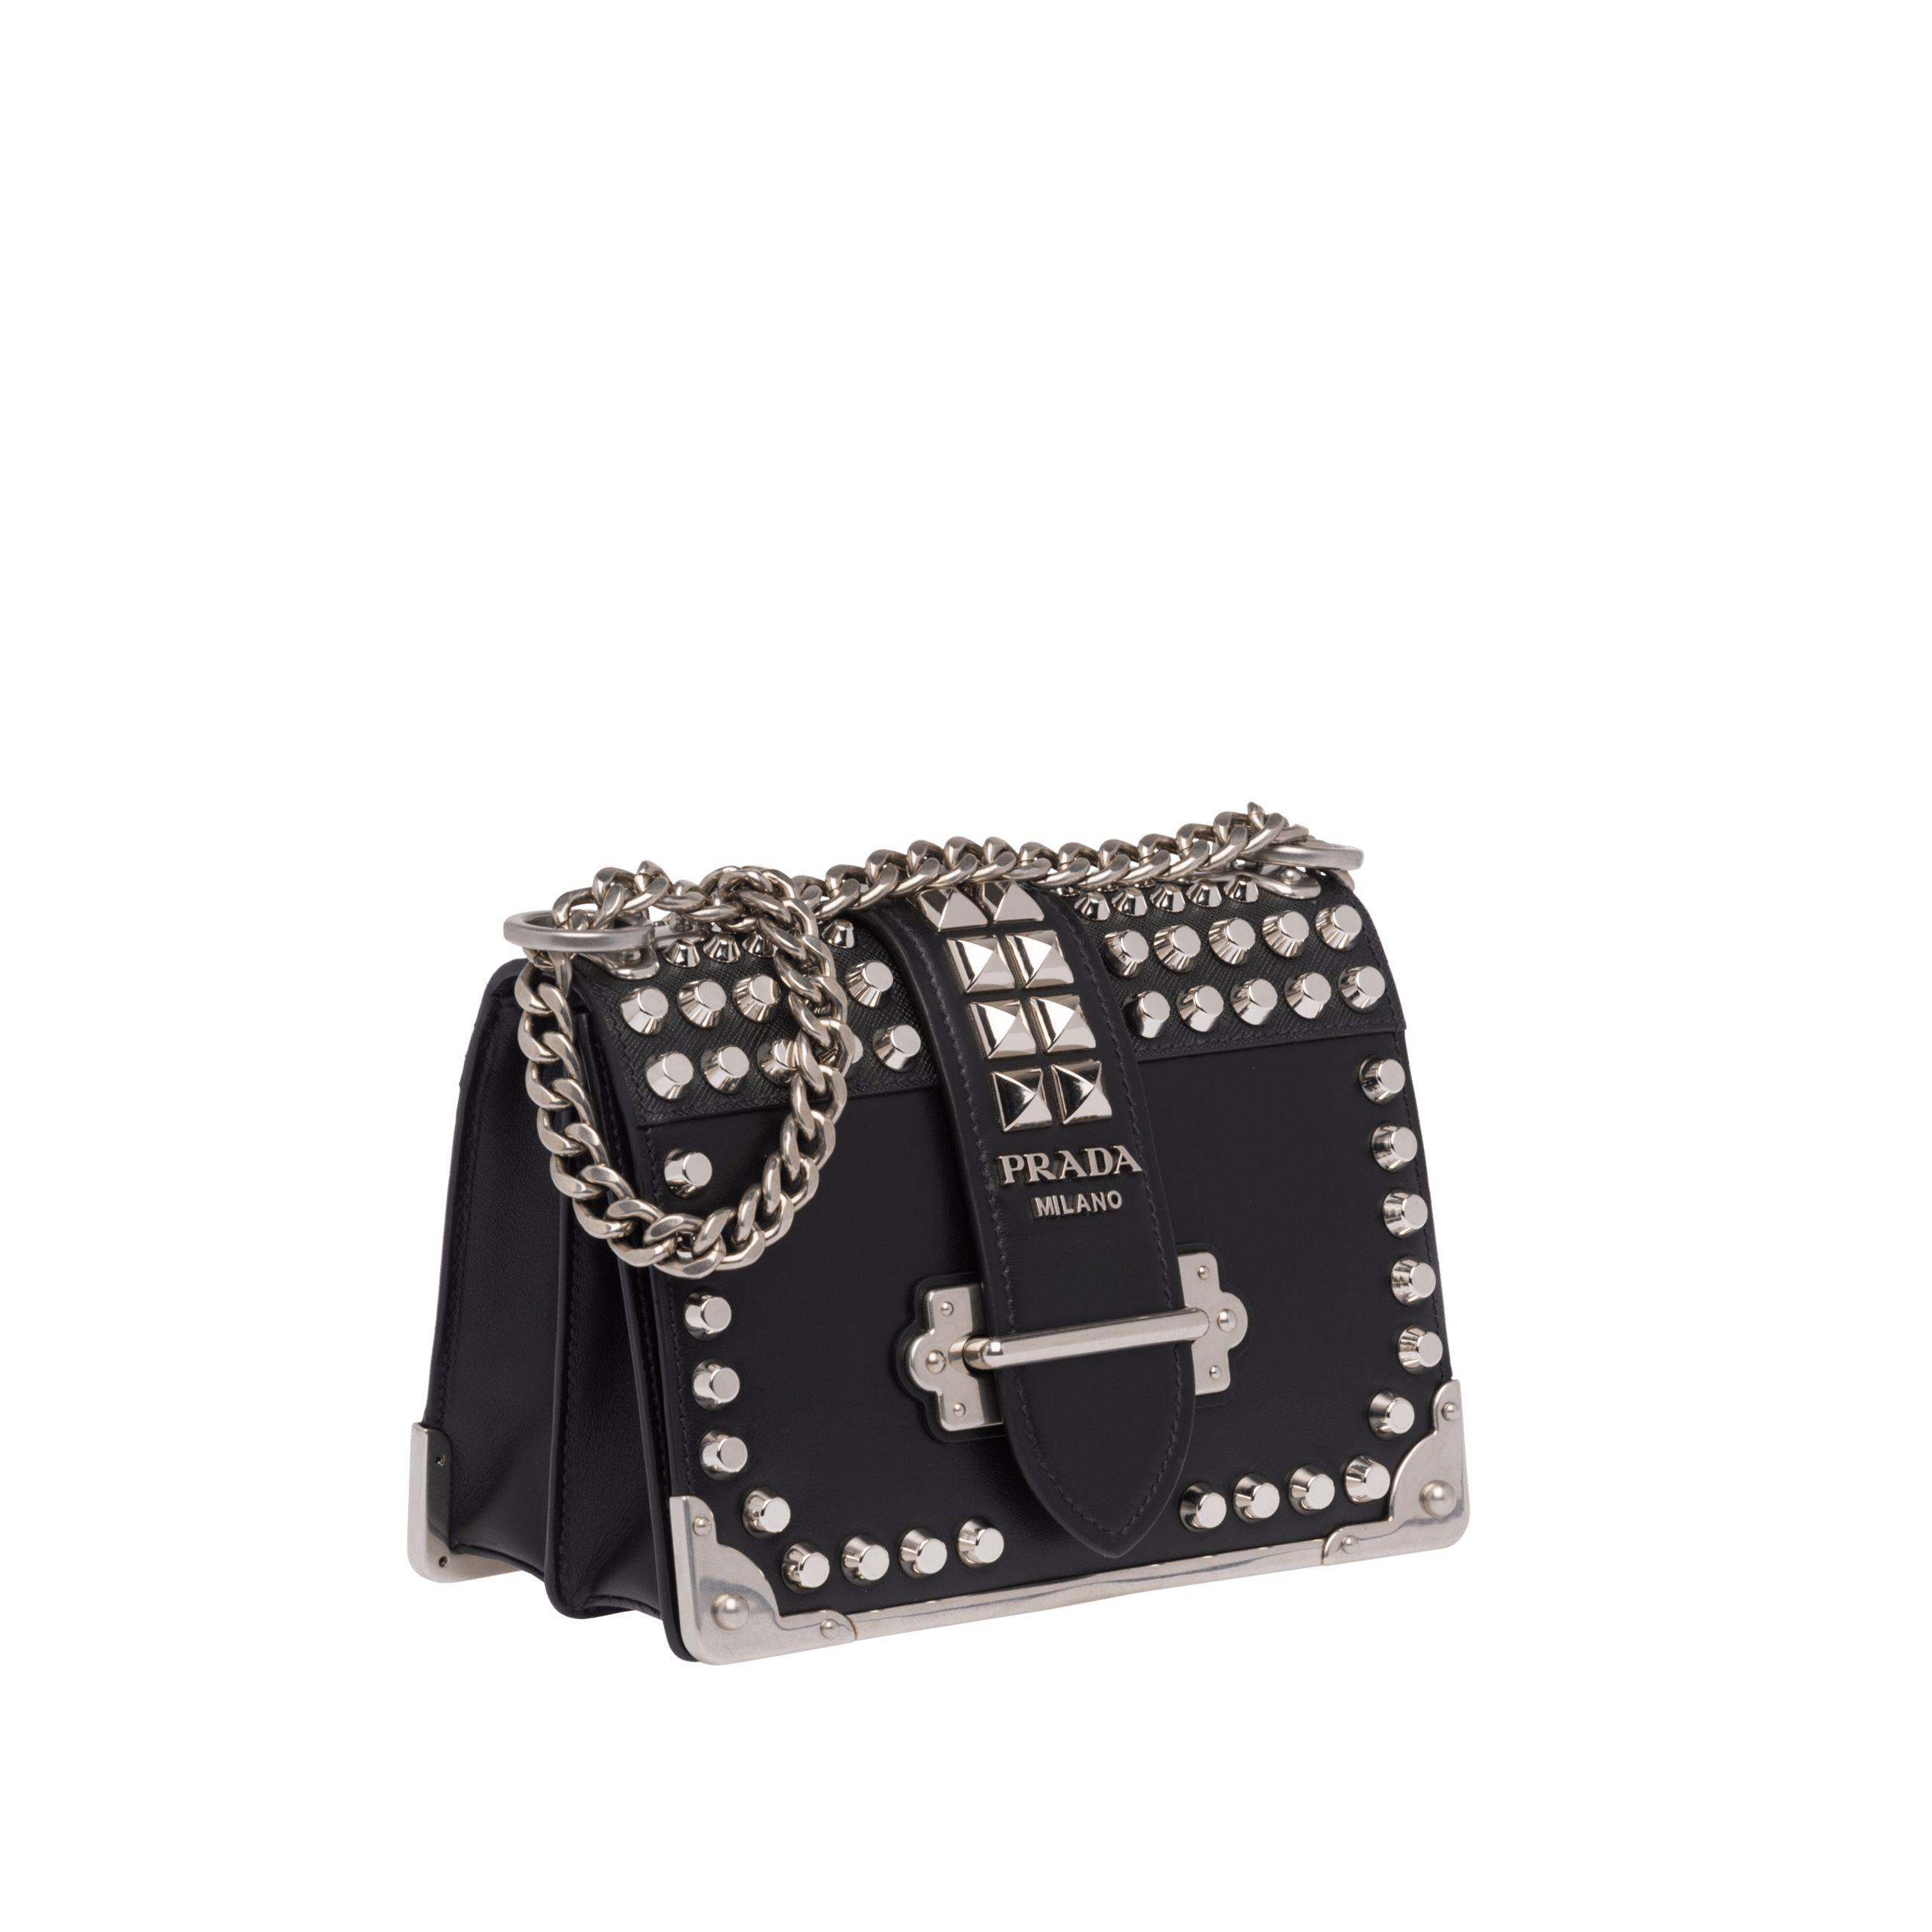 1a1347c53d Lyst - Prada Cahier Studded Leather Bag in Black